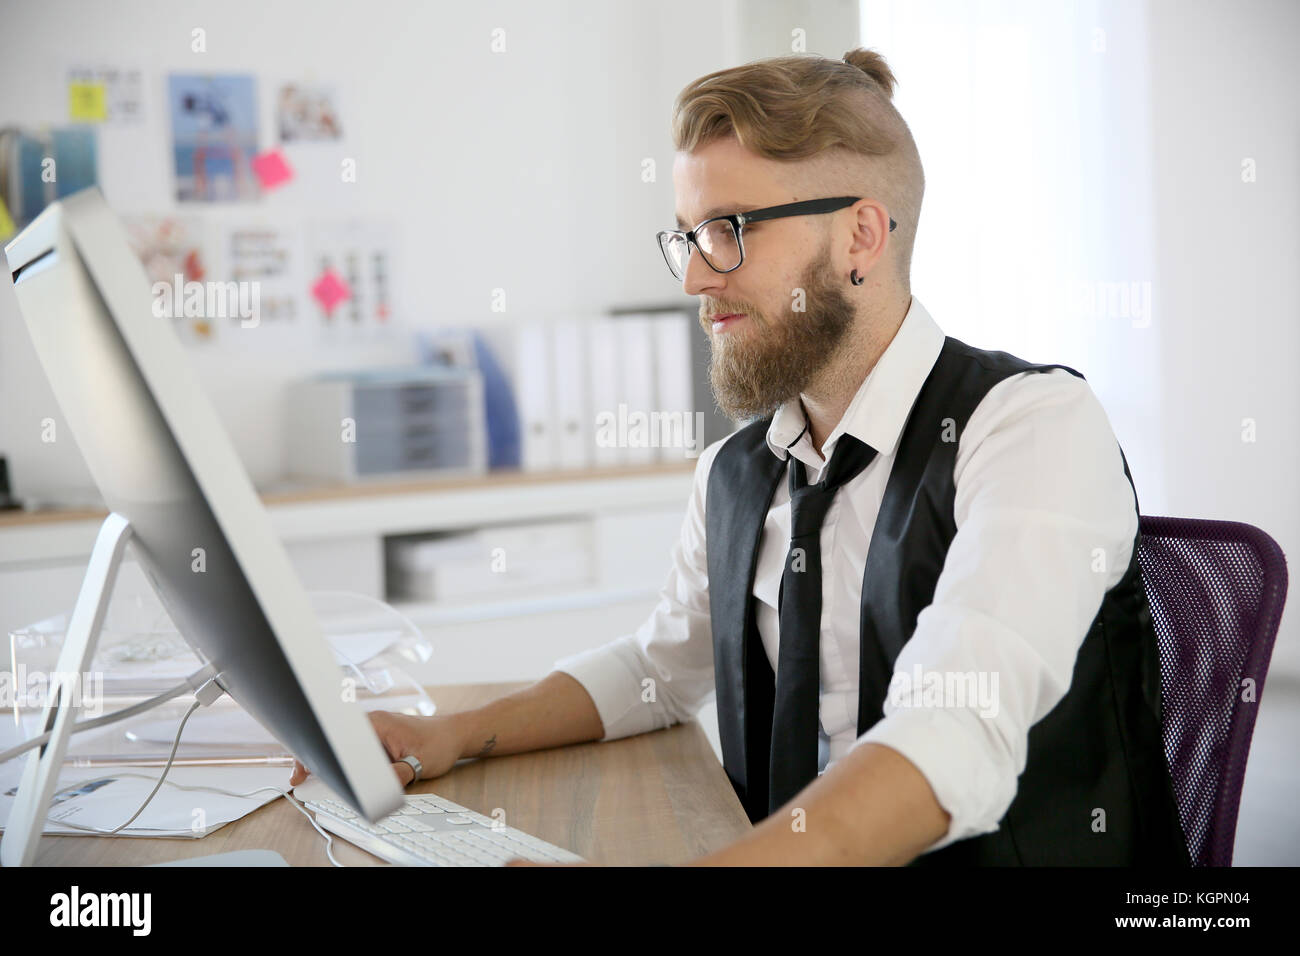 Young man in office working on desktop computer - Stock Image